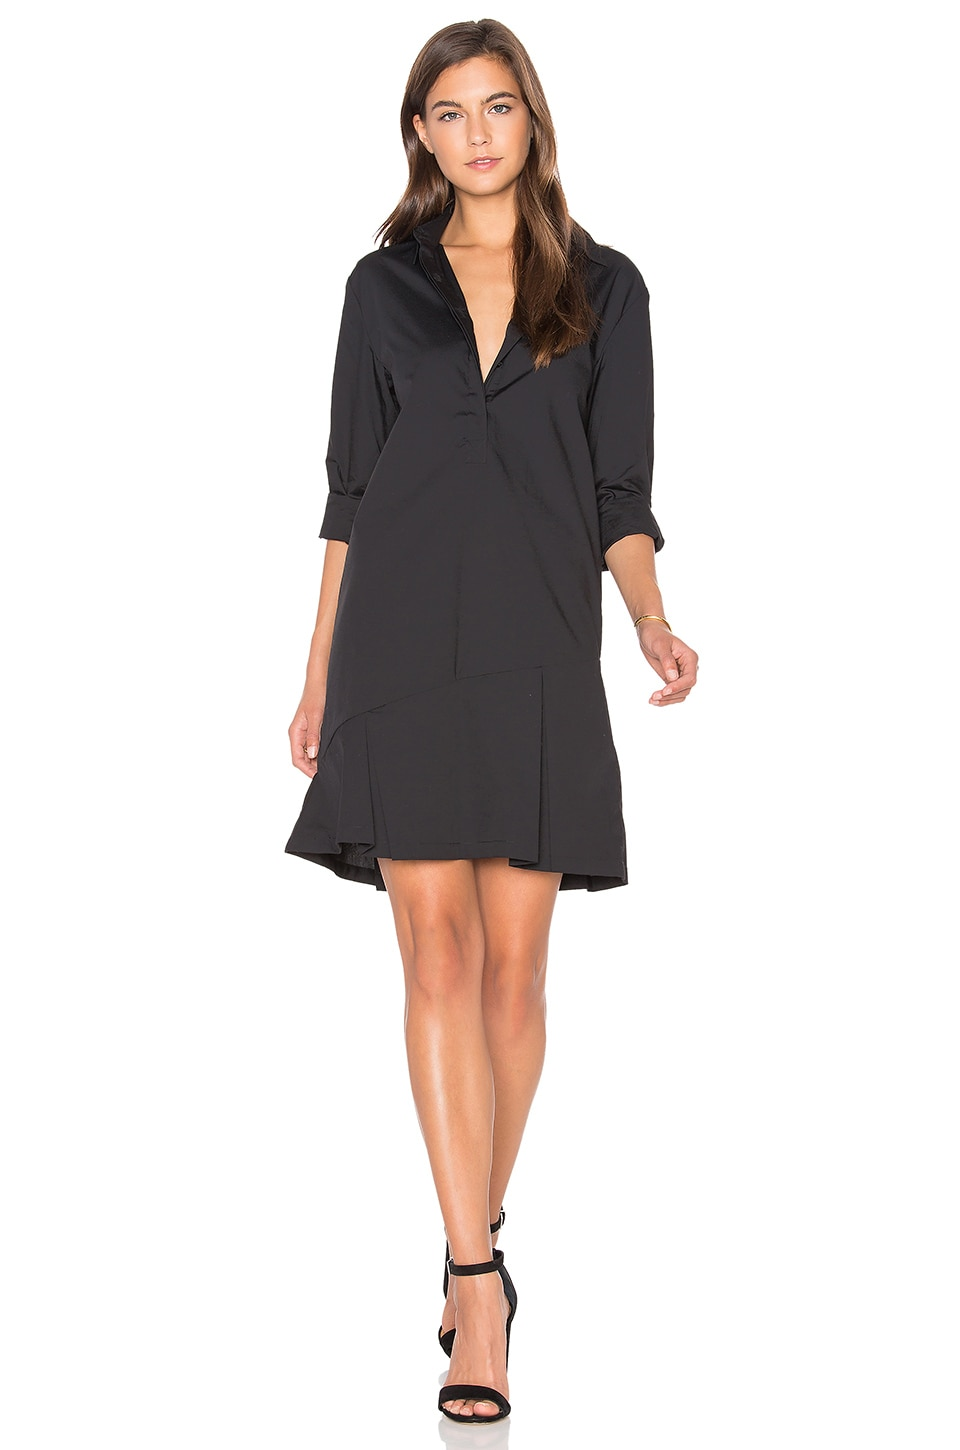 The Siena Shirt Dress by TY-LR